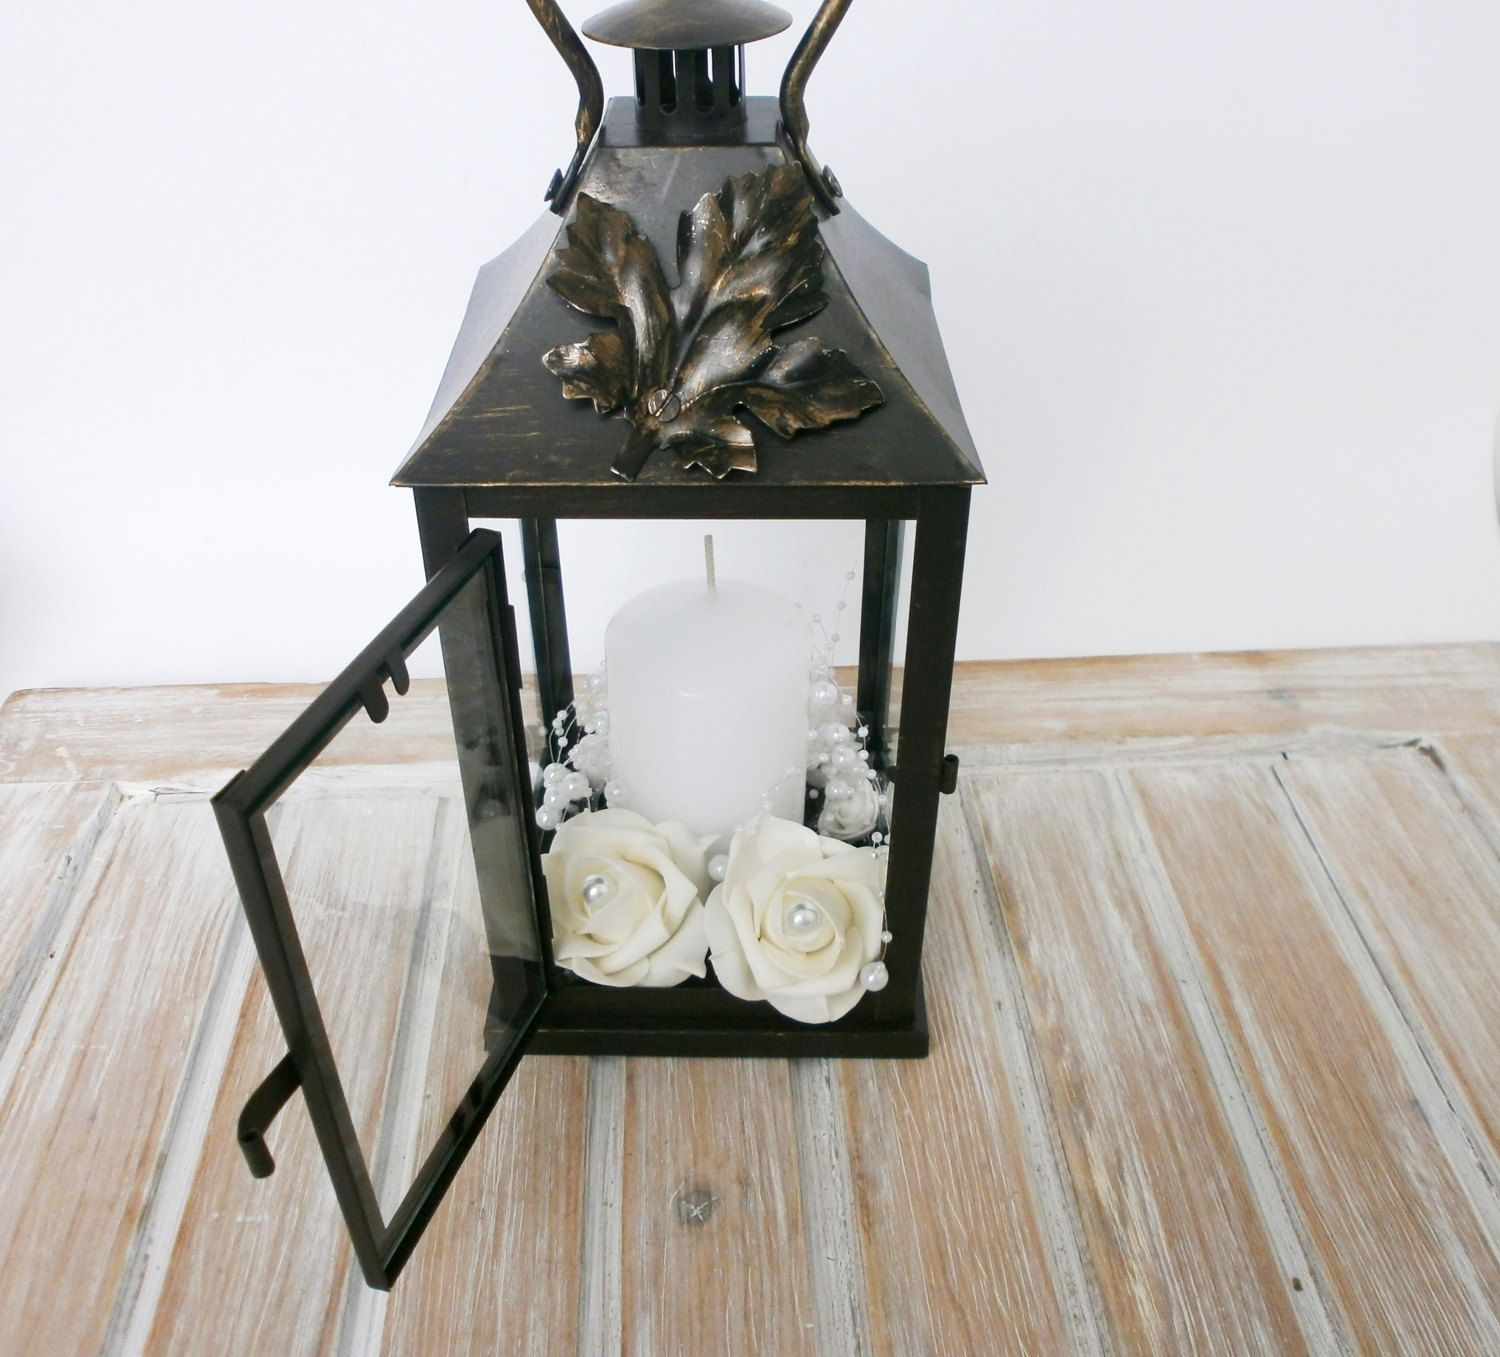 Rustic Lantern Wedding Centerpiece Candle Holder Decoration Vintage Decor Pearl And Roses